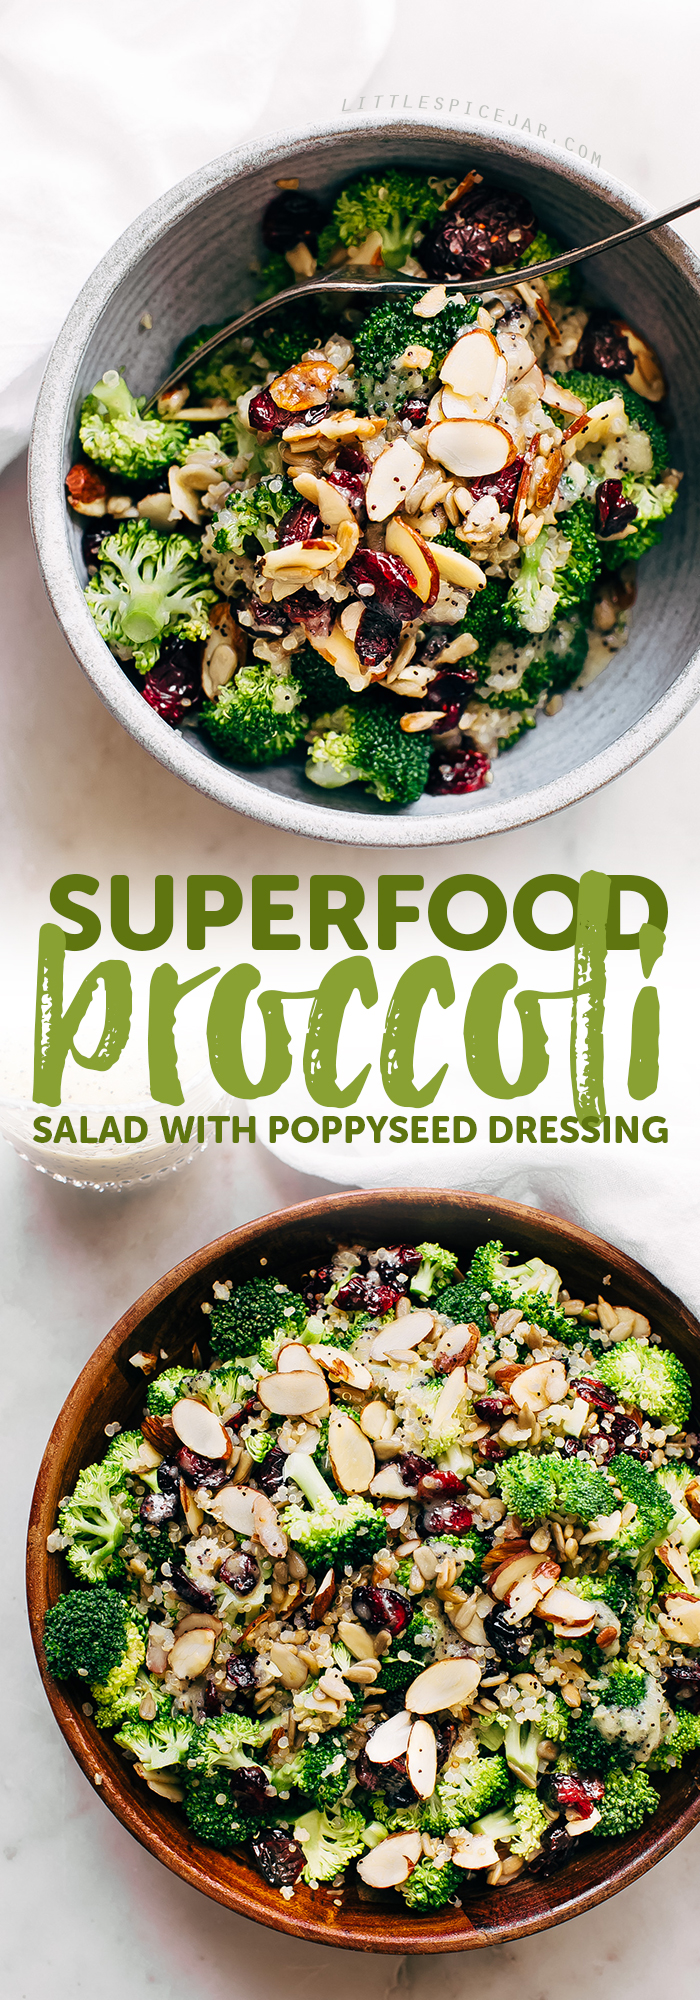 Superfood Broccoli Salad with Poppy Seed Dressing - a simple superfood loaded salad that's filling and nutritious! So good you'll want to make it ALL the time! #broccolisalad #superfoodsalad #salad #powersalad   Littlespicejar.com